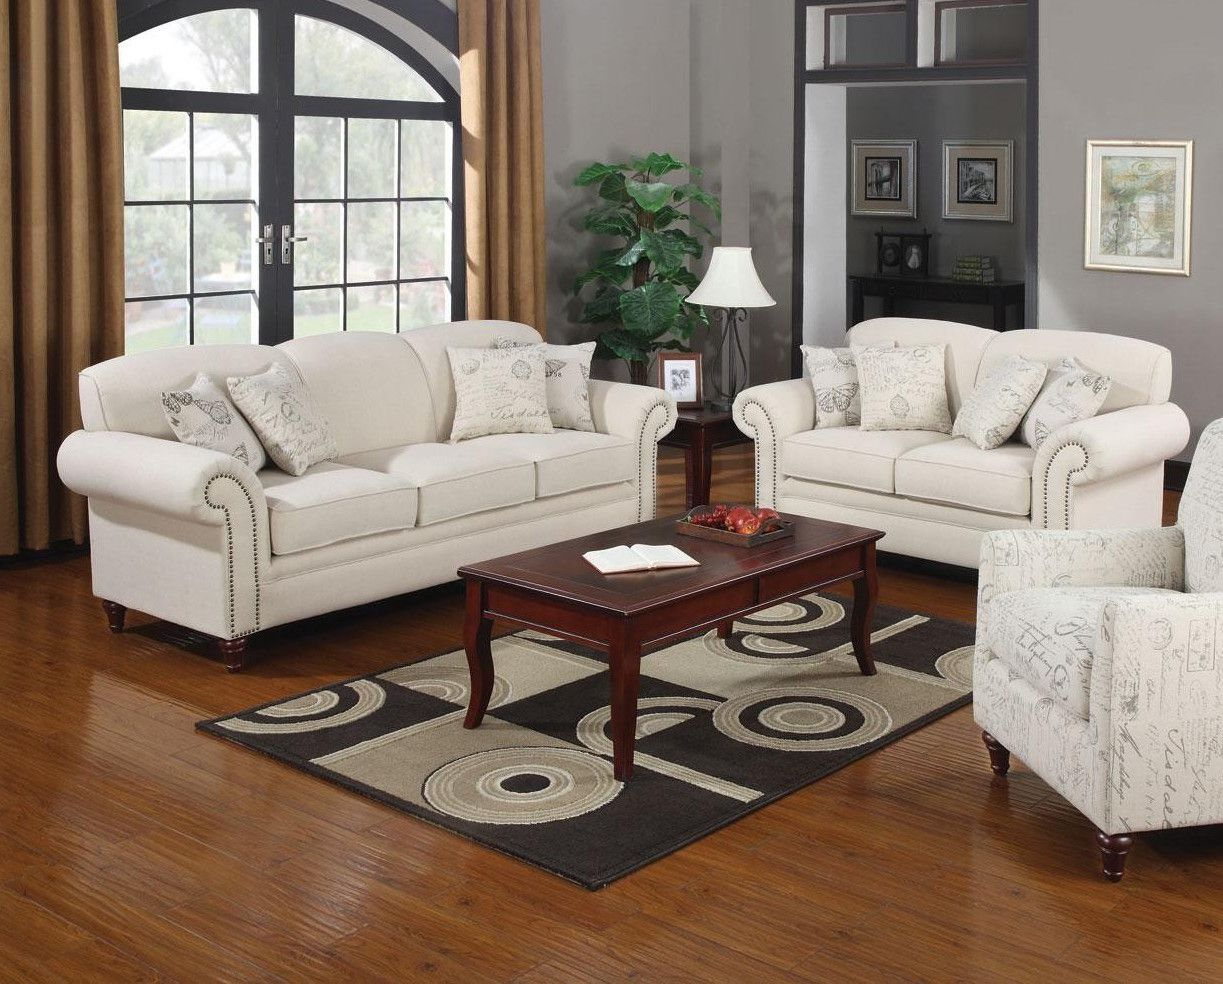 Nova 2 Piece Living Room Set Cheap Living Room Furniture Sofa And Loveseat Set Cheap Living Room Sets